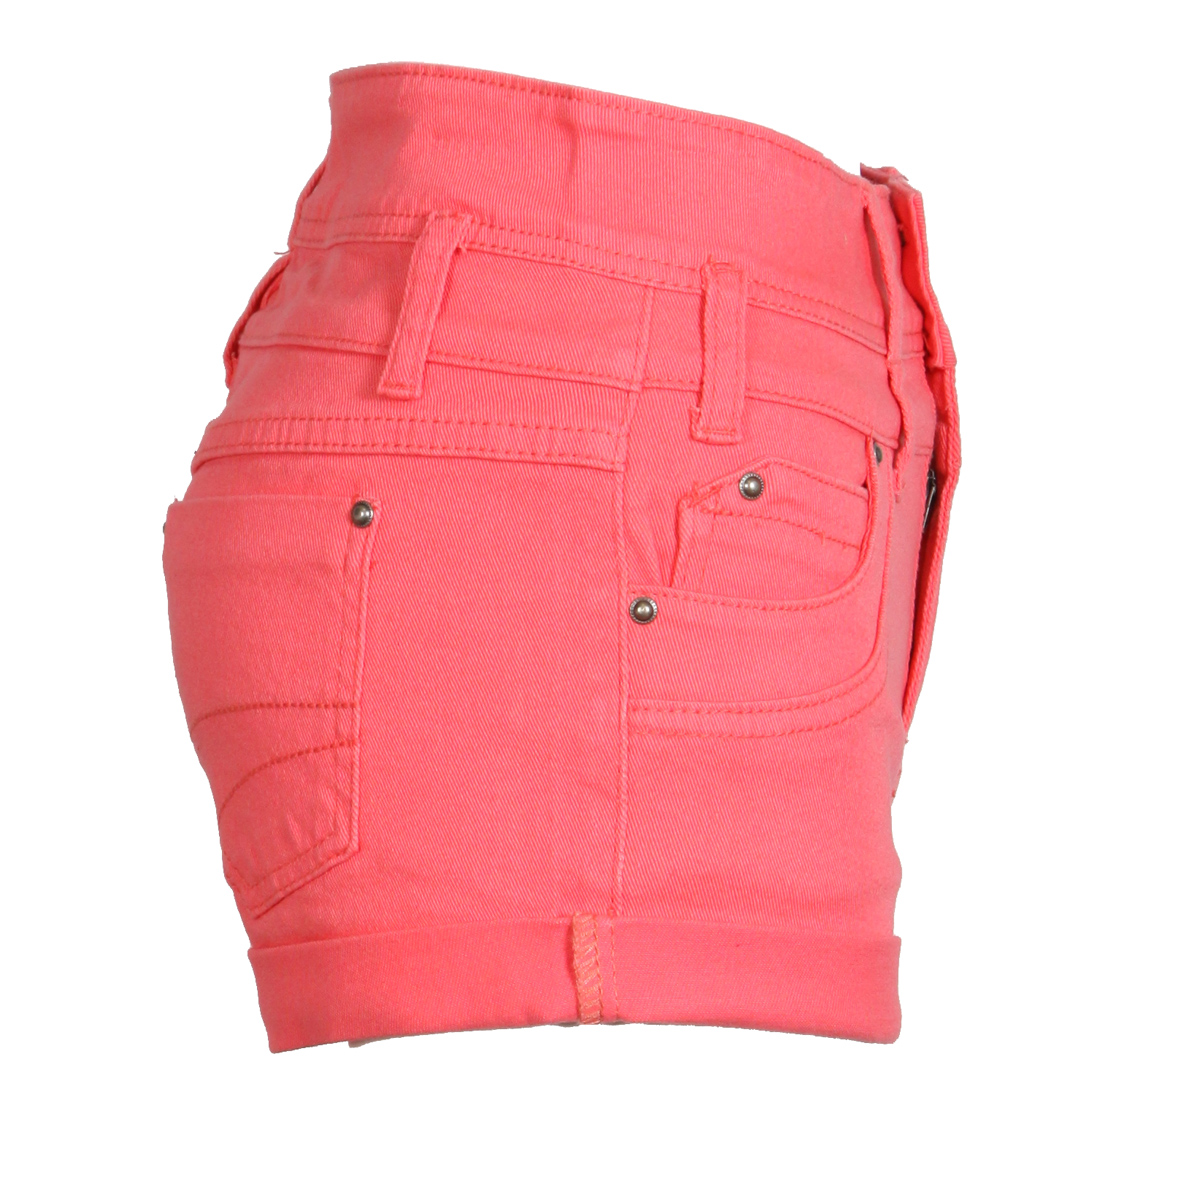 NEW-WOMENS-CORAL-PINK-DENIM-SHORTS-HIGH-WAIST-HOT-PANTS-HOTPANTS-LADIES-CASUAL